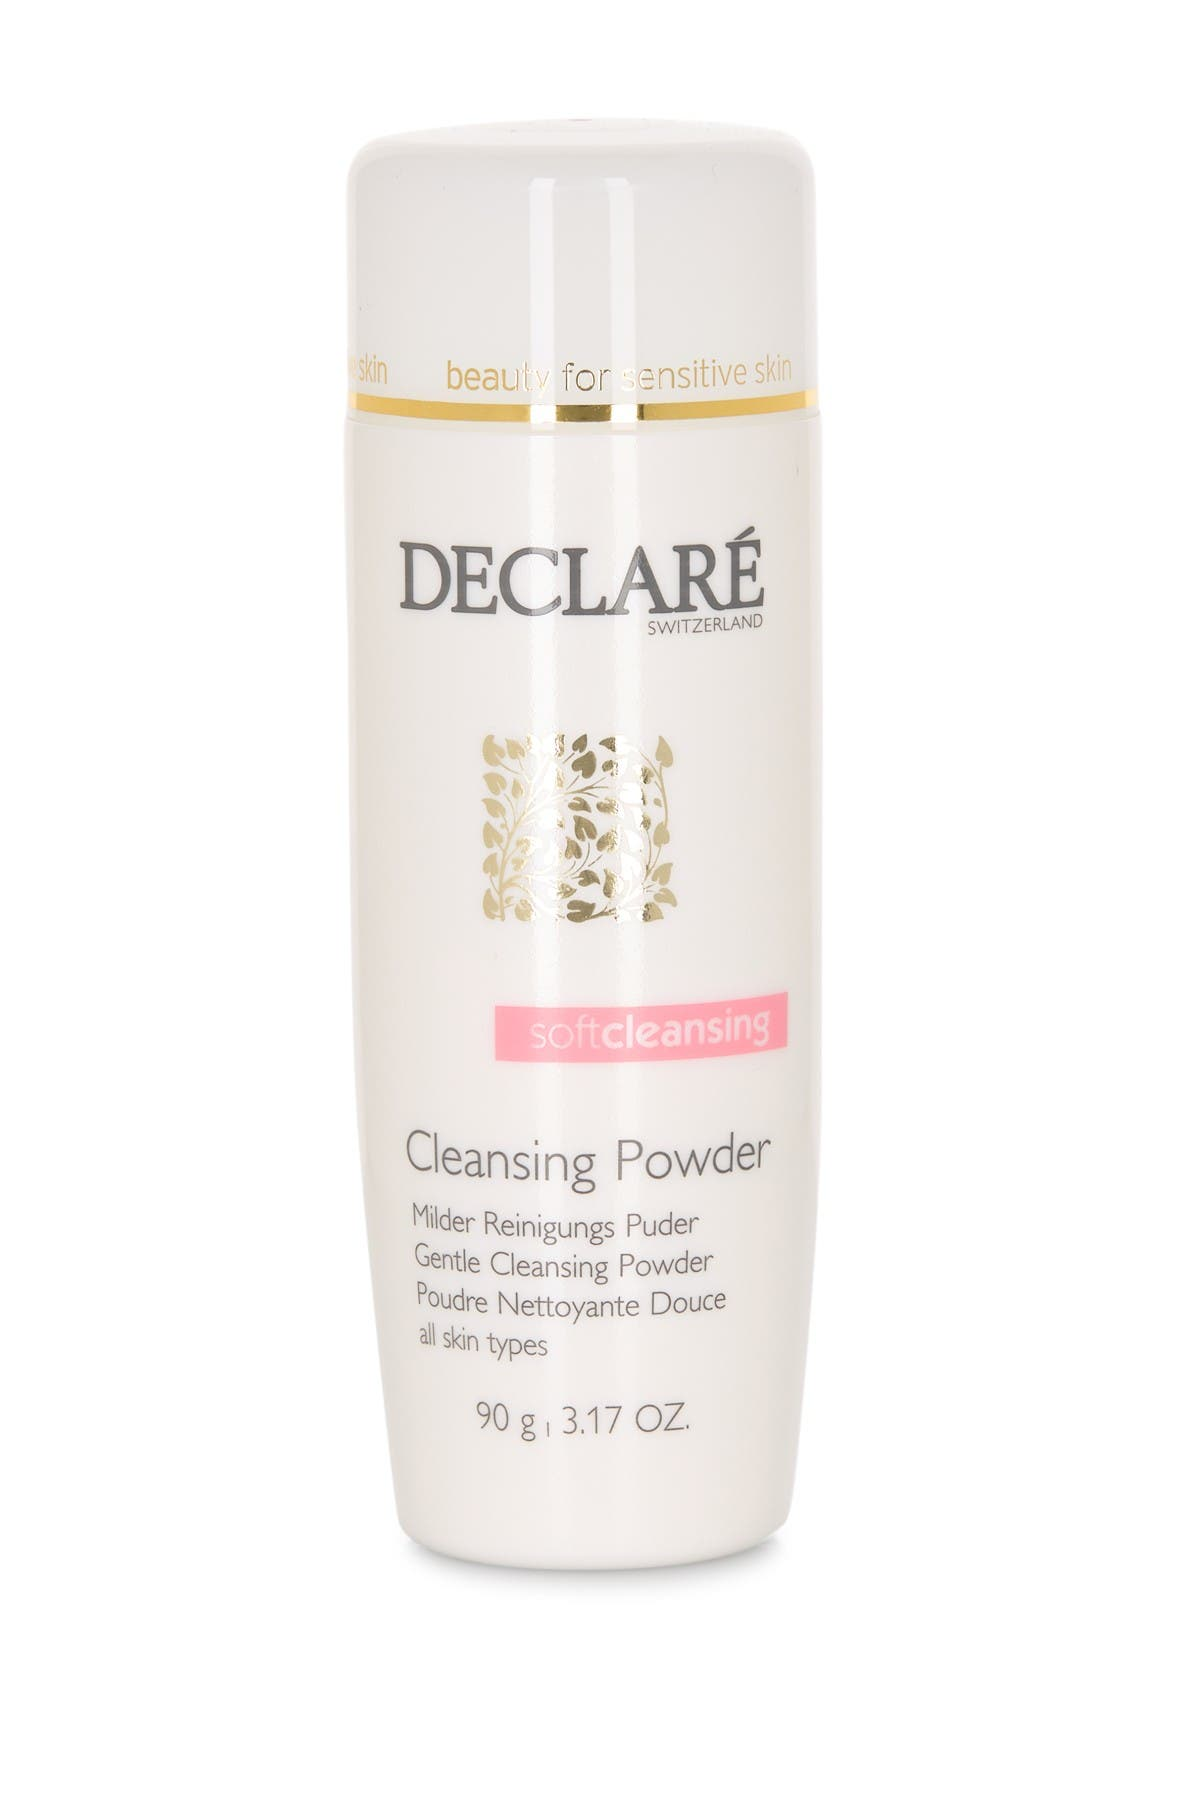 Image of DECLARE Gentle Cleansing Powder